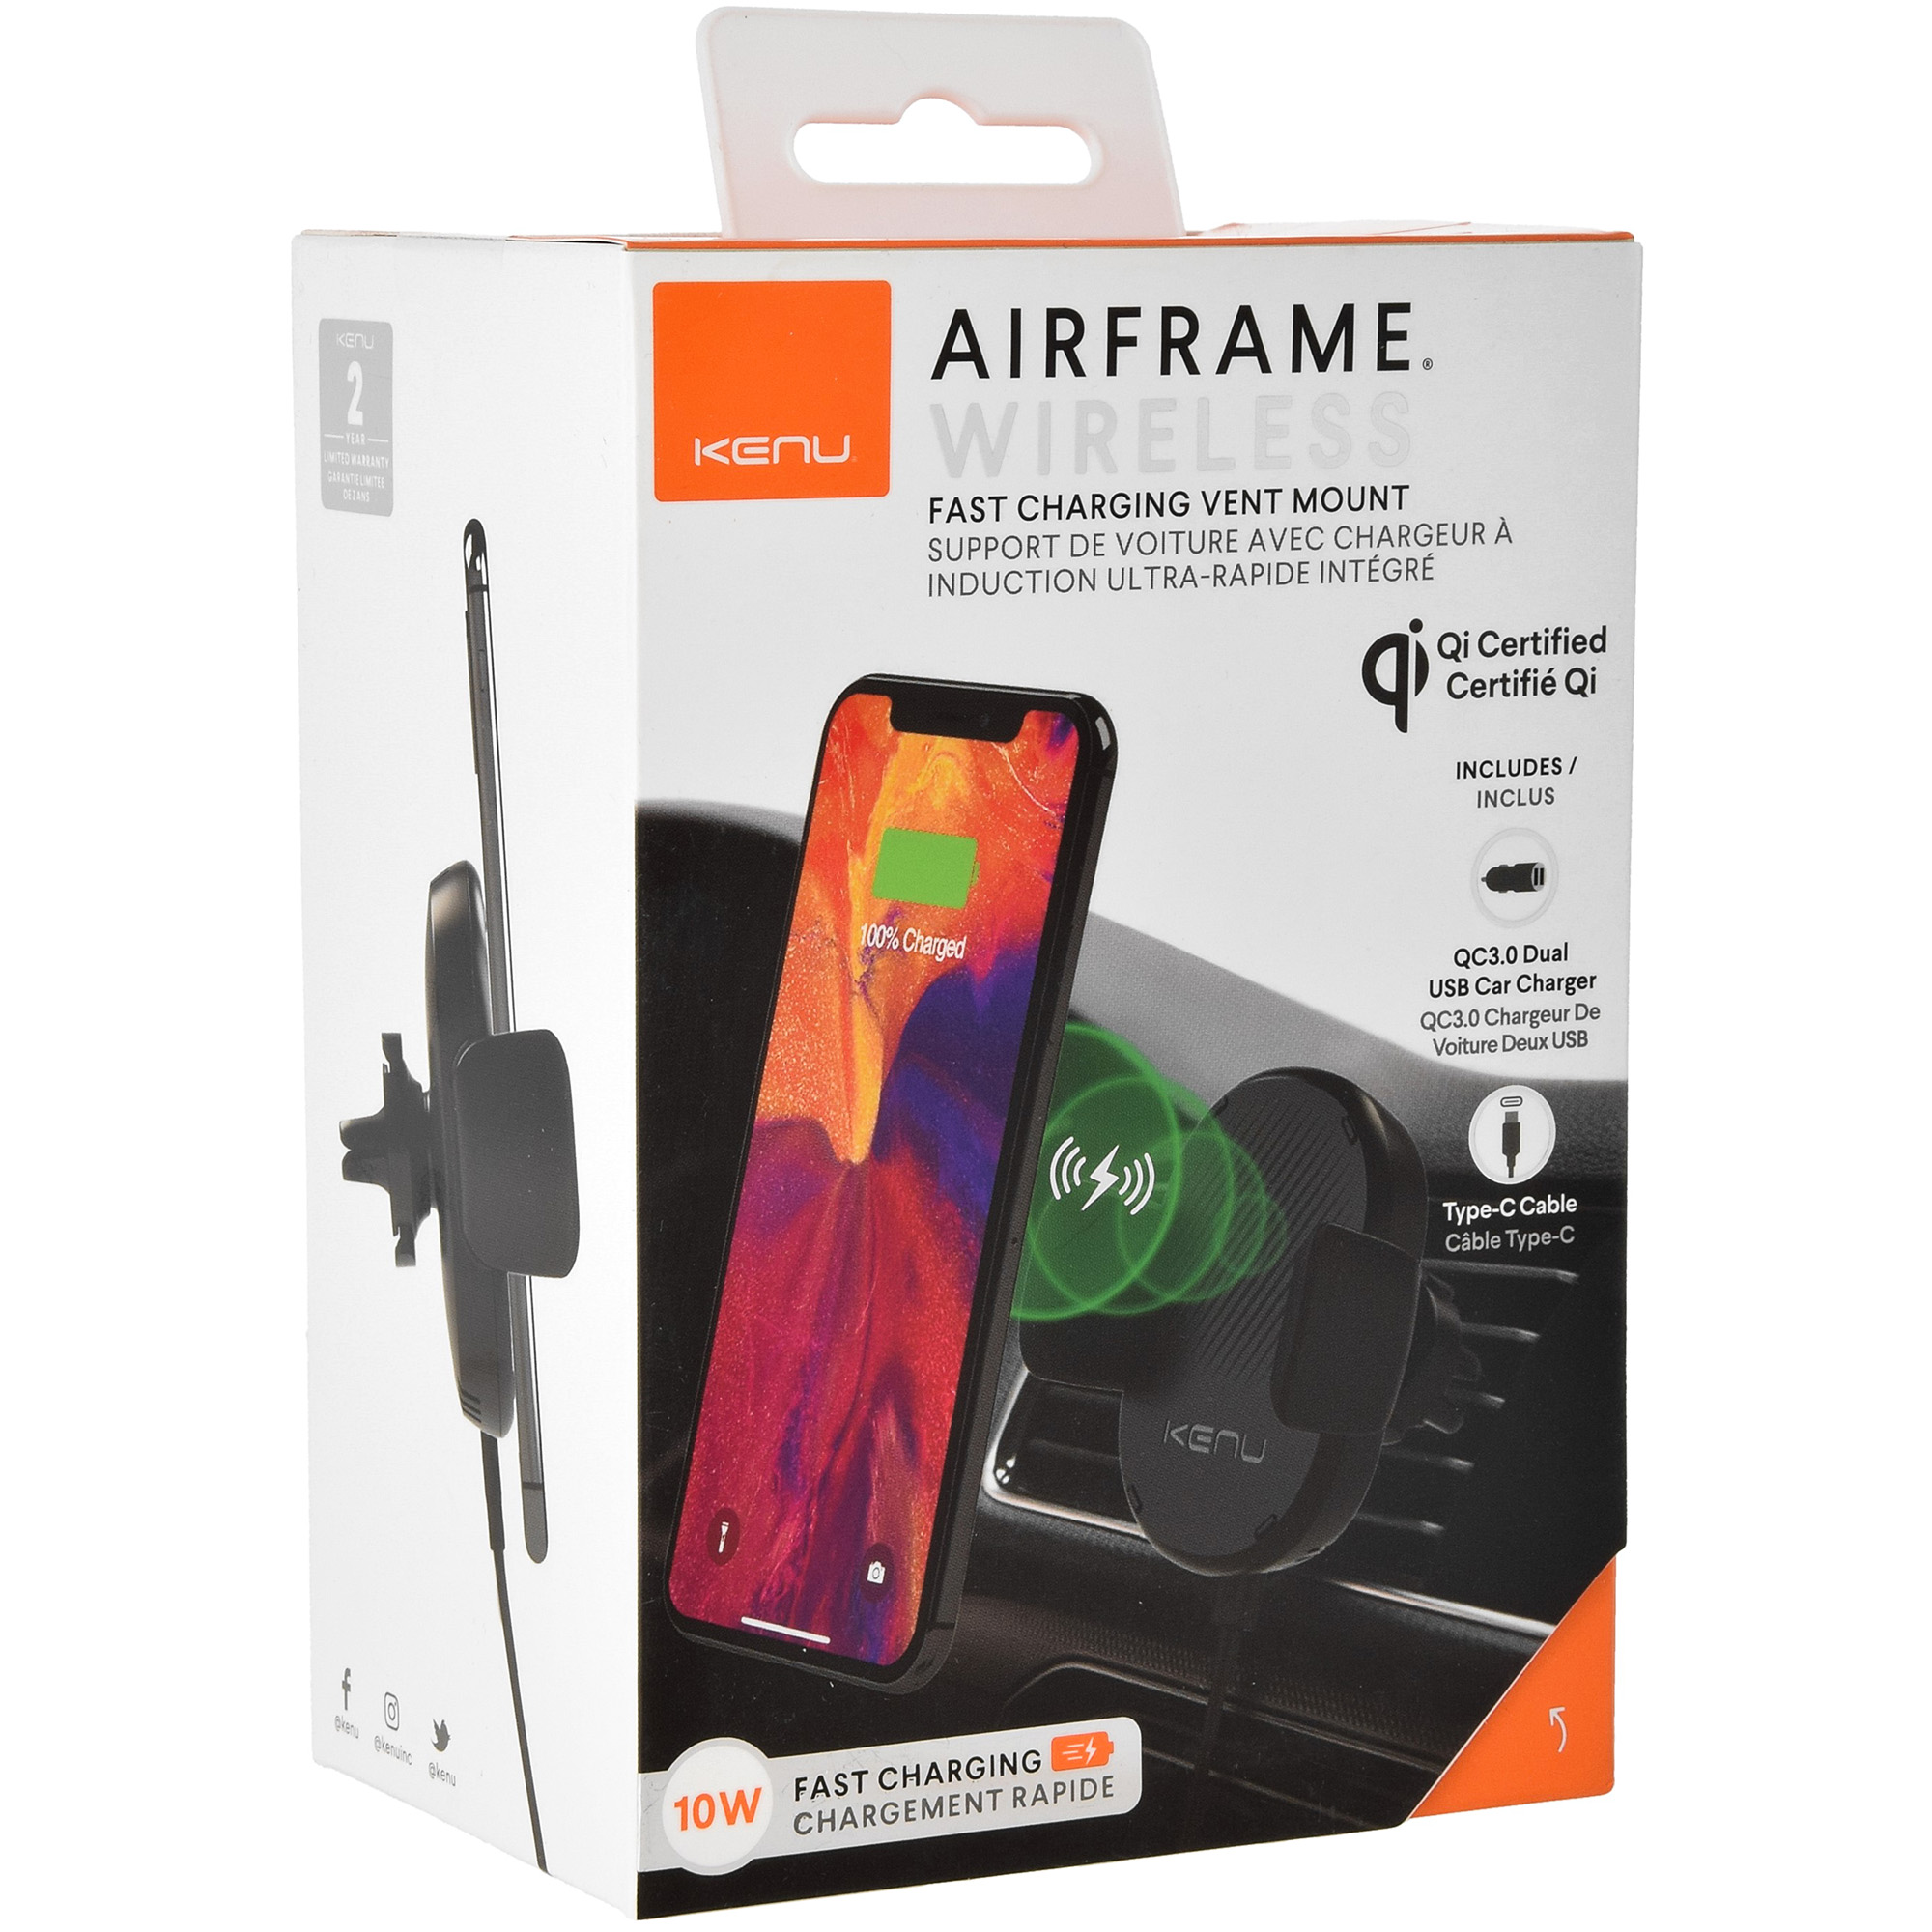 Uchwyt Kenu Airframe Wireless